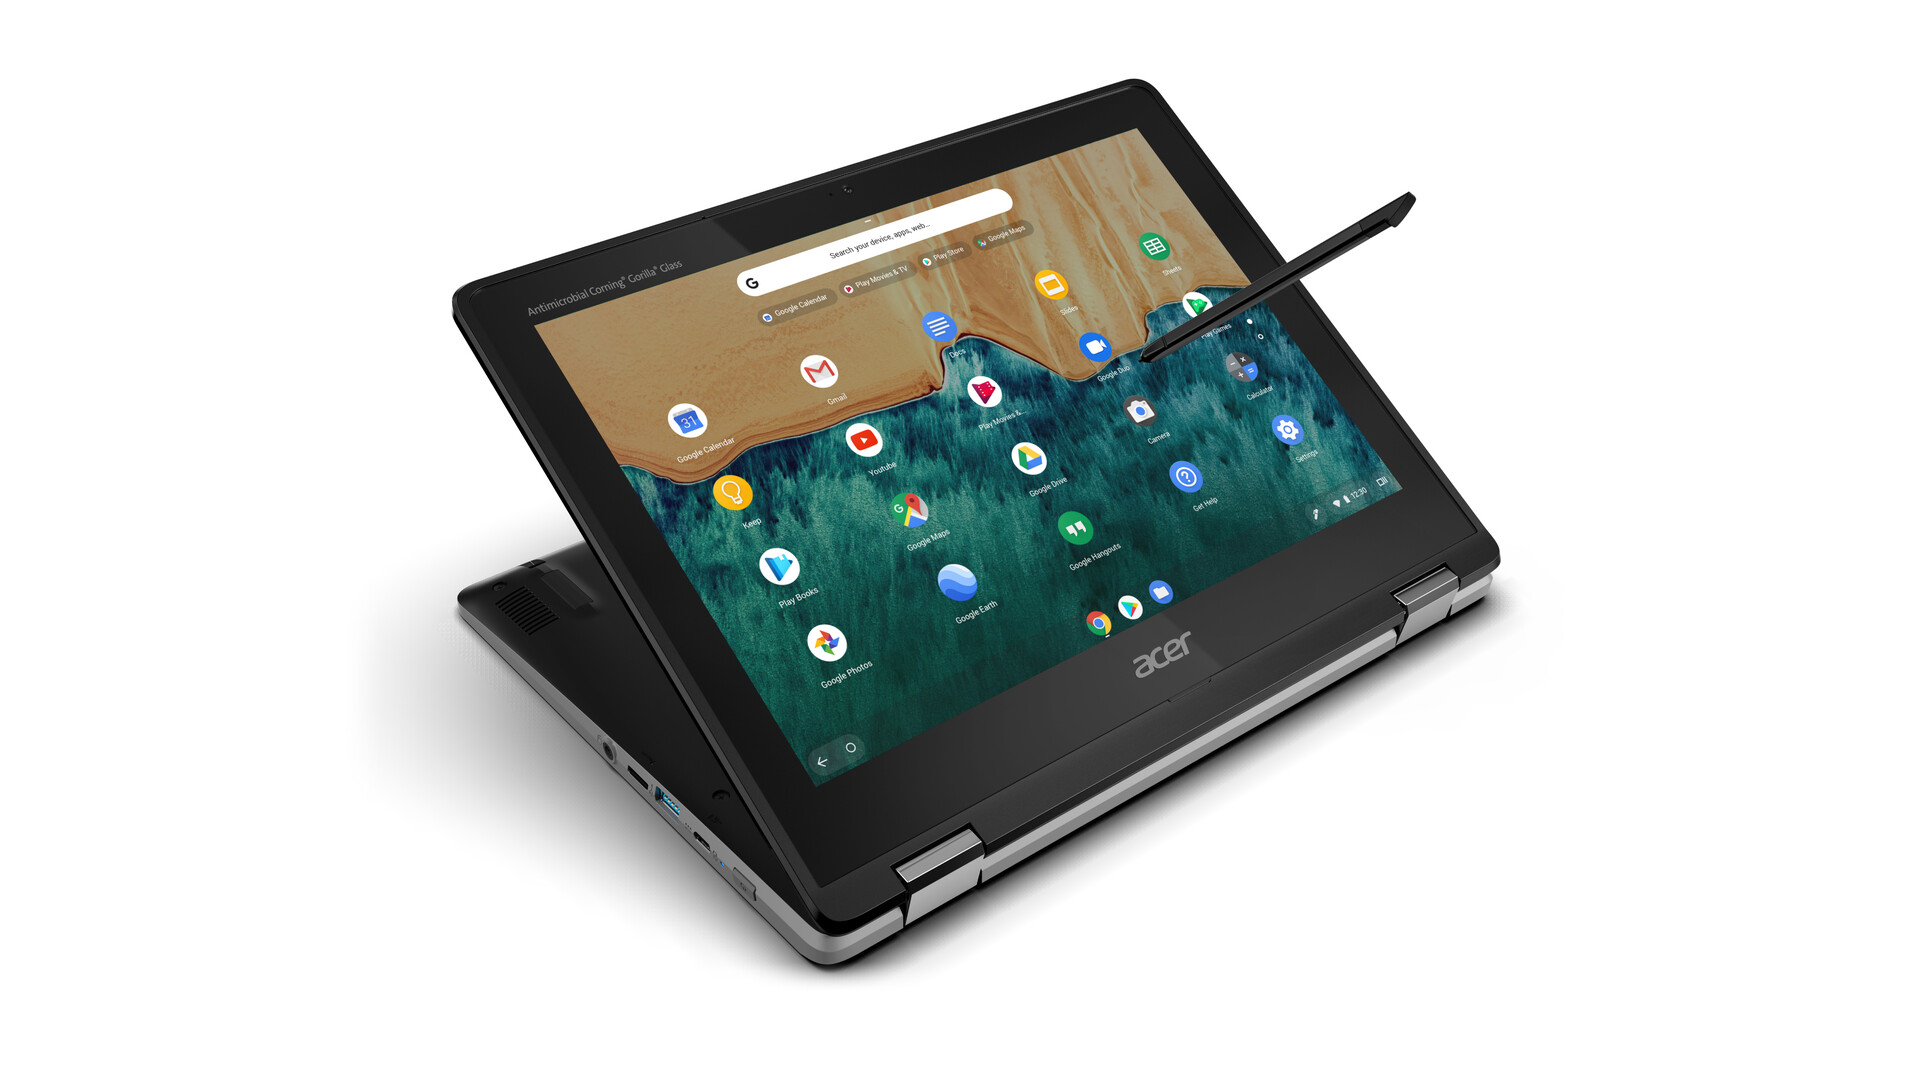 Awe Inspiring Acer Announces School Friendly Chromebook 512 Laptop And Download Free Architecture Designs Rallybritishbridgeorg